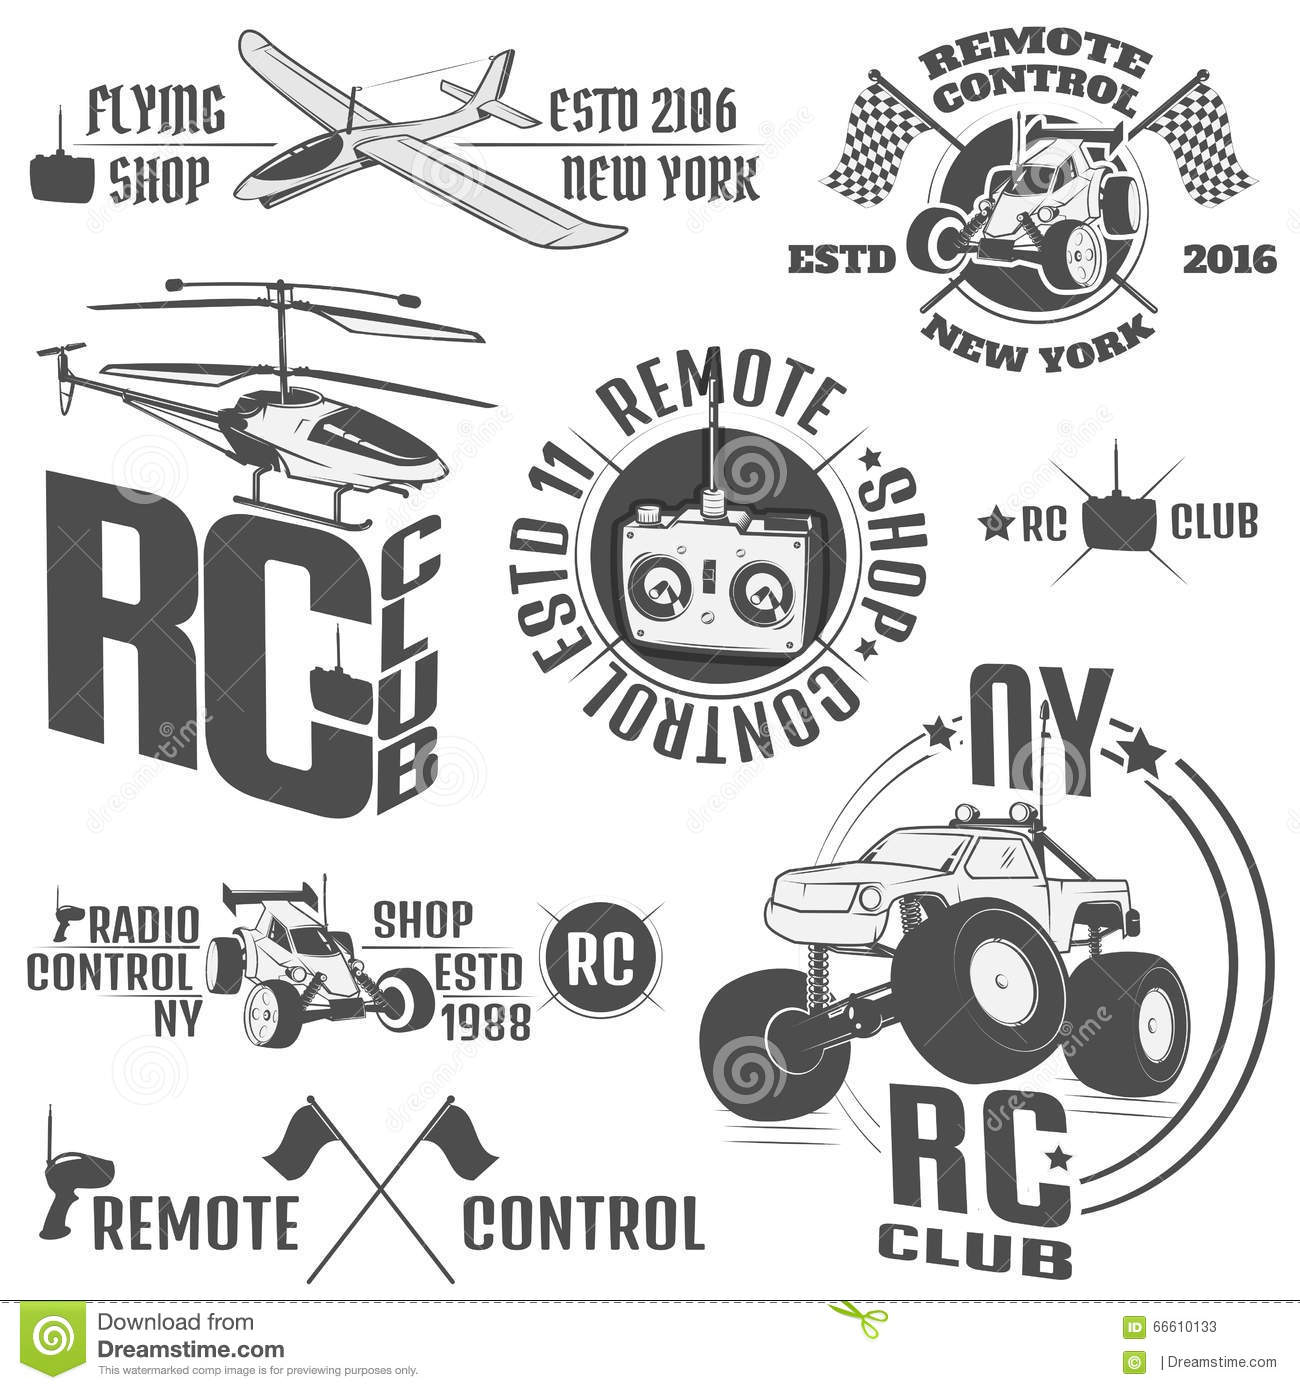 Set of radio controlled machine emblems,RC, radio controlled toys design elements for emblems, icon, tee shirt ,related emblems, l